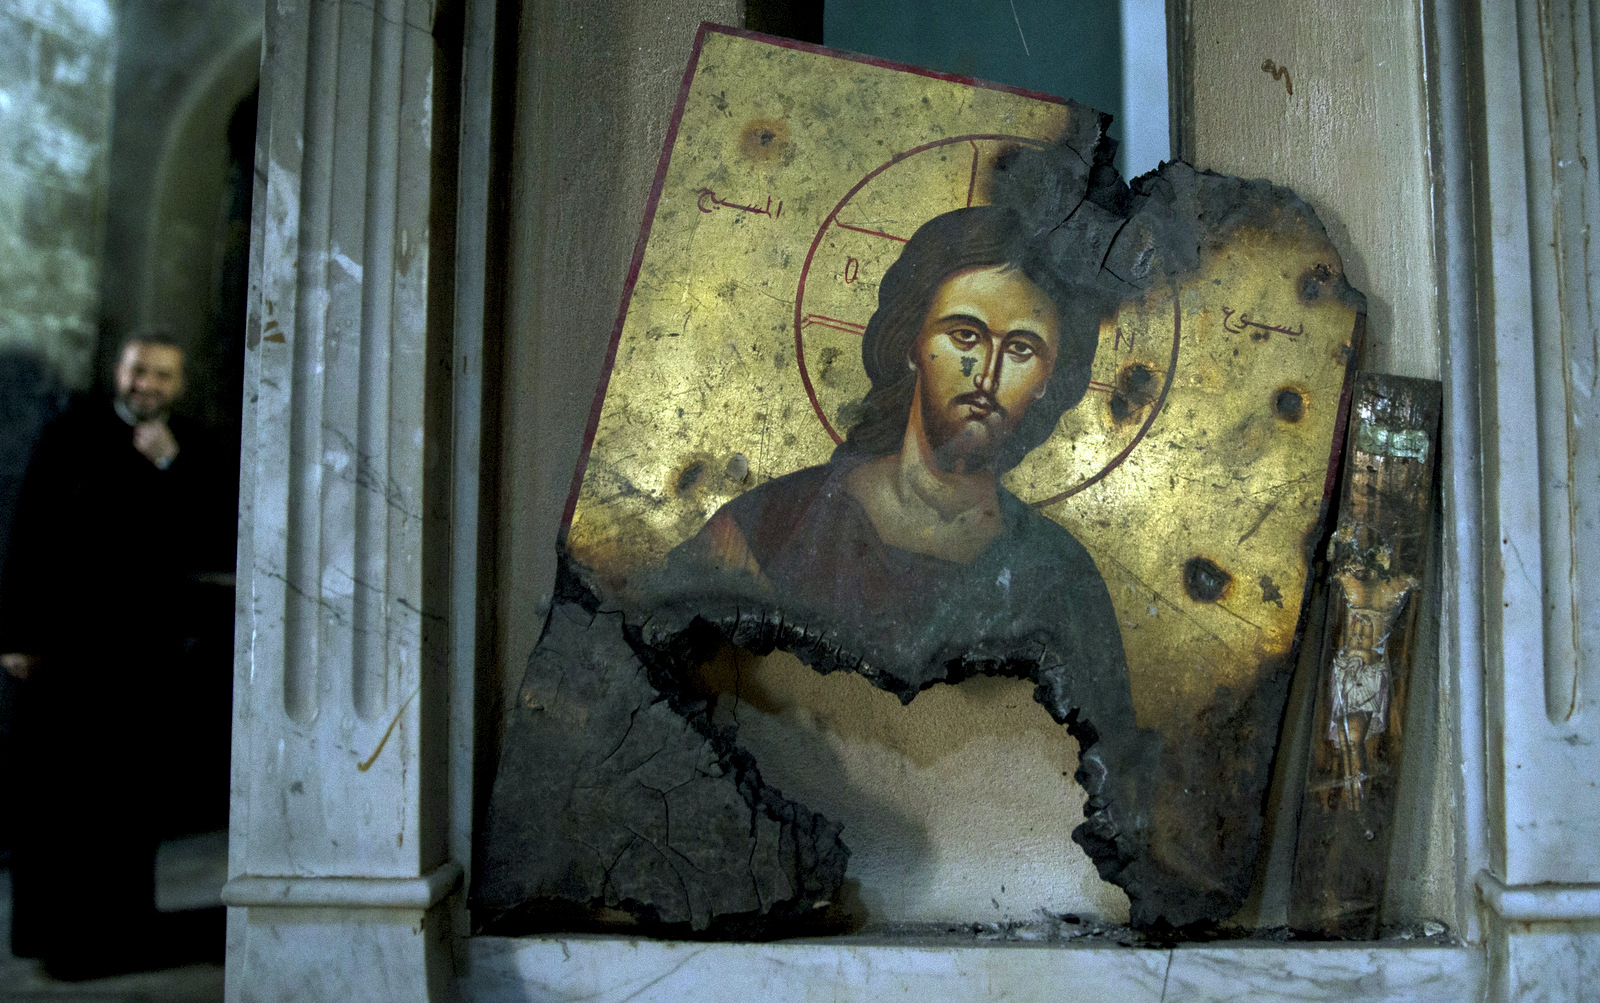 A half-burned image of Christ is placed next to a wall at a Greek Orthodox church in Maaloula, Syria, March 3, 2016. Maaloula, an ancient Christian town 40 miles northeast of Damascus, changed hands several times in the war. Its historic churches pillaged by Syrian rebels and buildings riddled with shrapnel reflect fierce fighting that devastated the town two years ago. (AP/Pavel Golovkin)